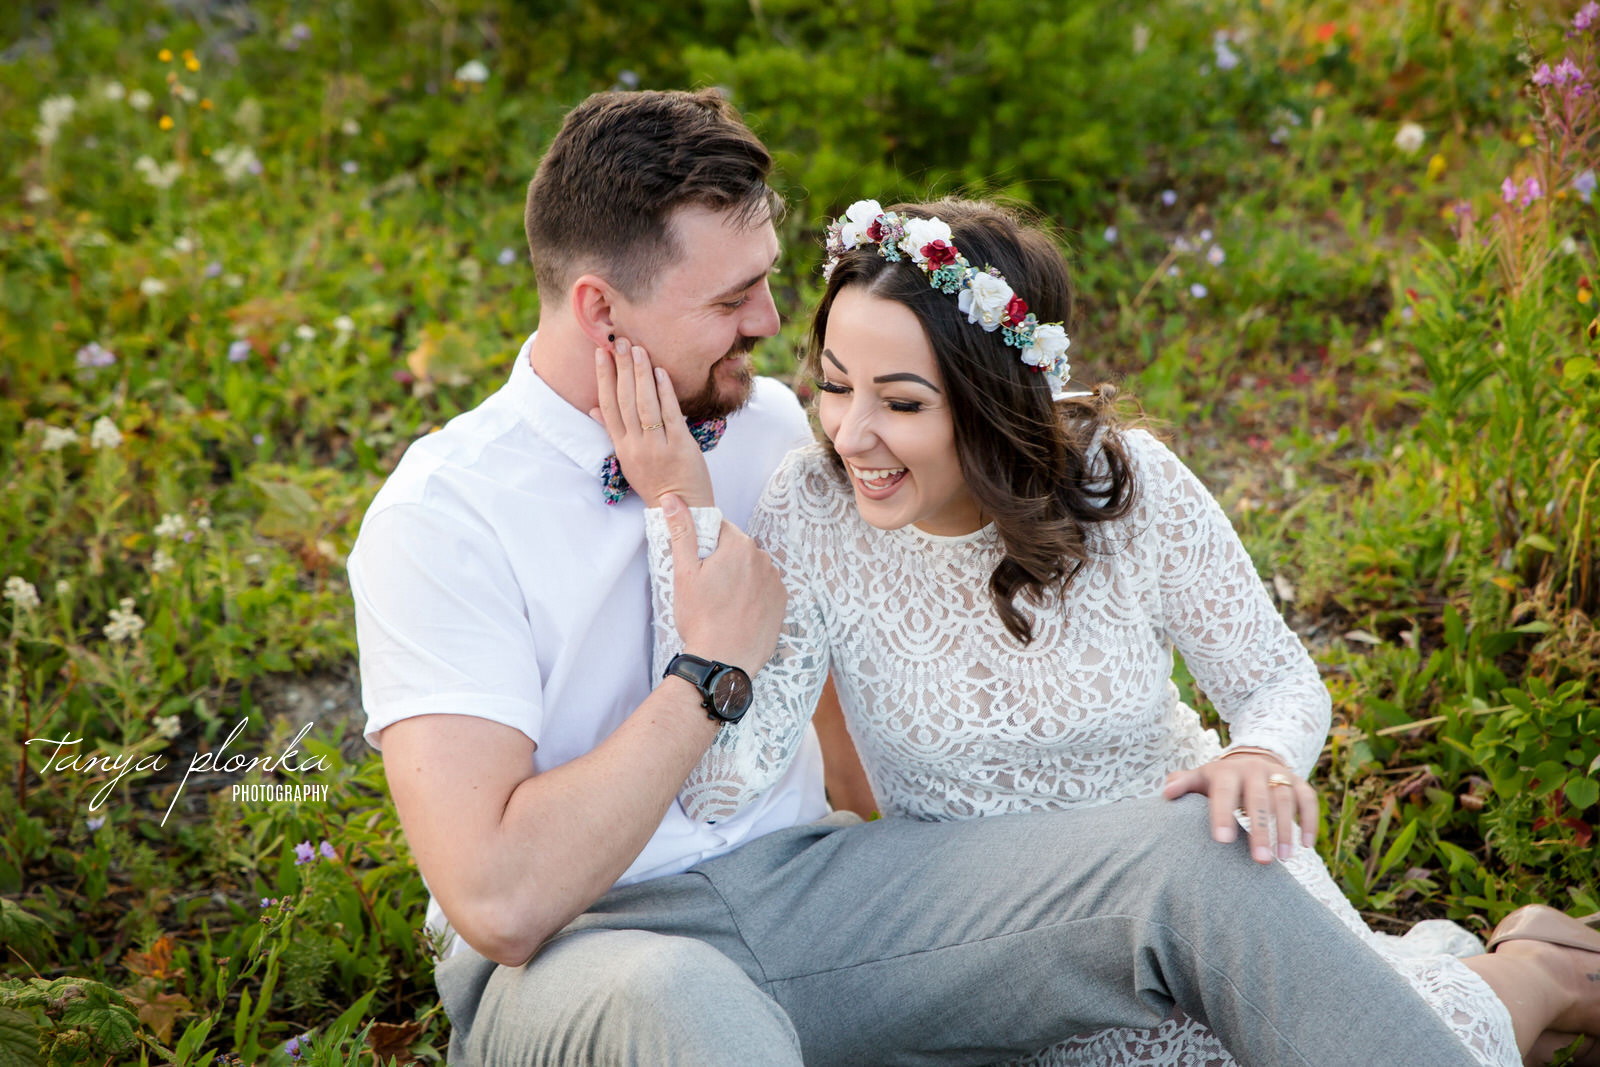 couple sitting on ground snuggling and laughing